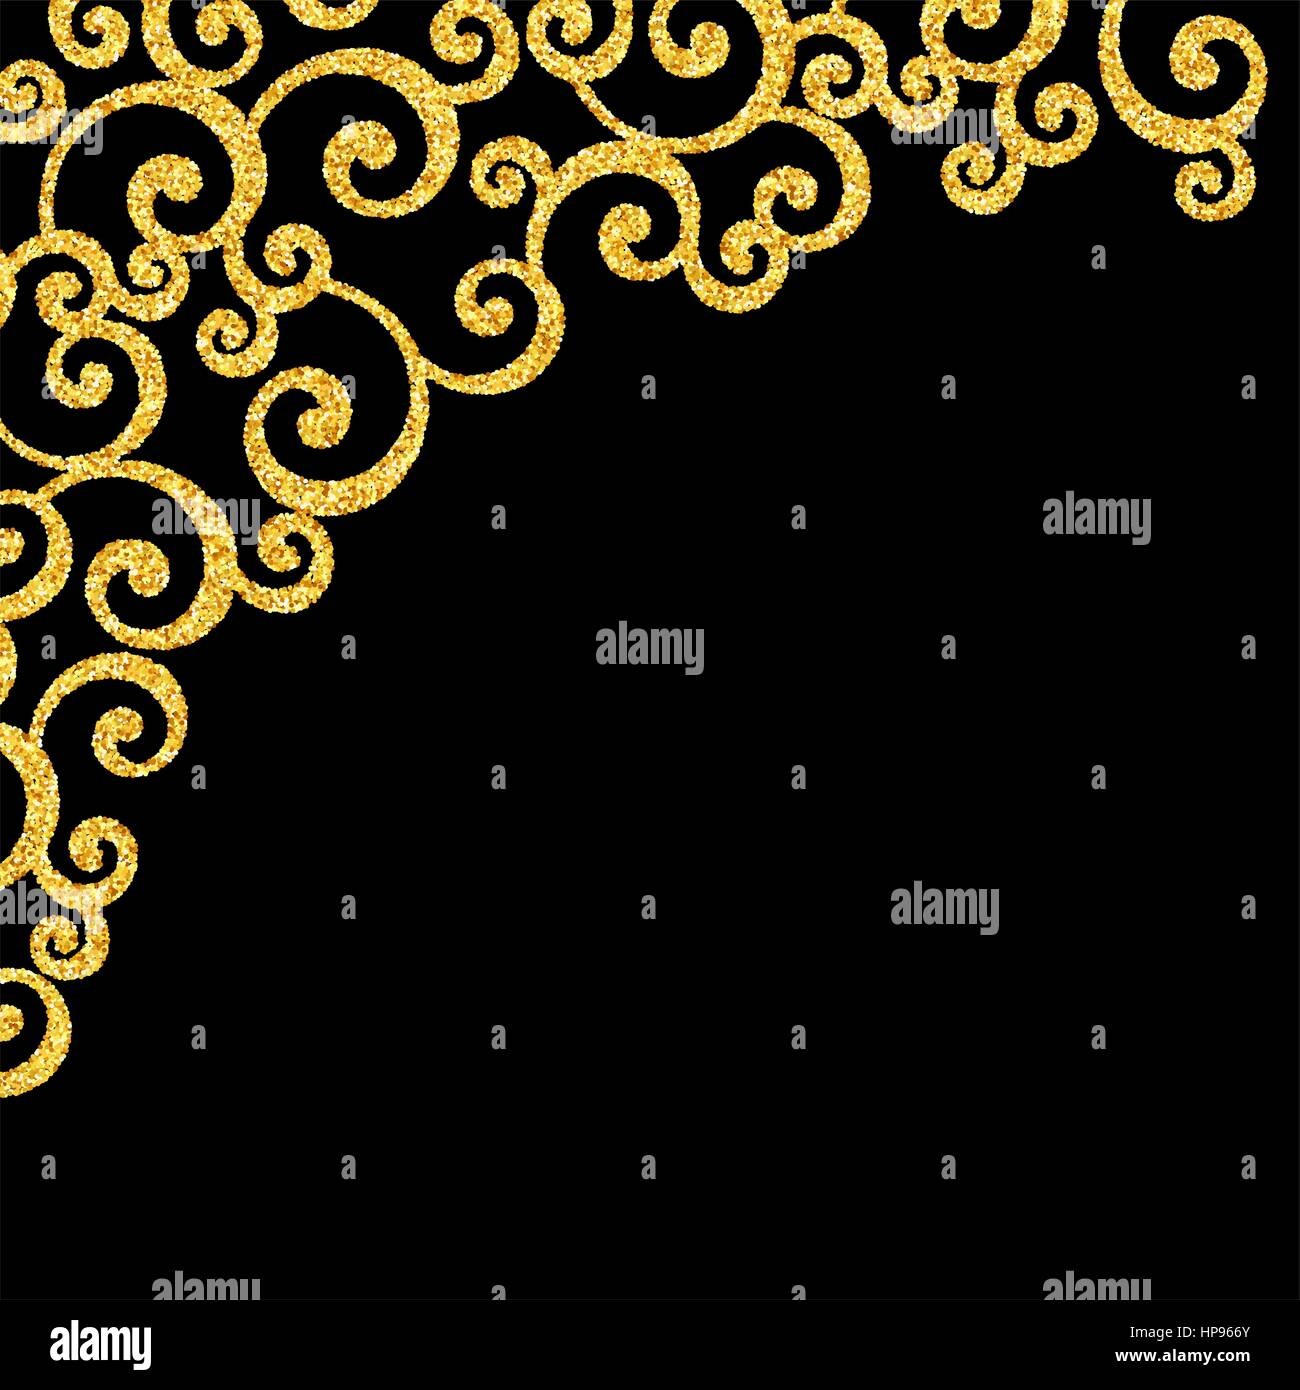 Vector gold glitter floral curl invitation card with swirl damask vector gold glitter floral curl invitation card with swirl damask pattern on black background stopboris Choice Image